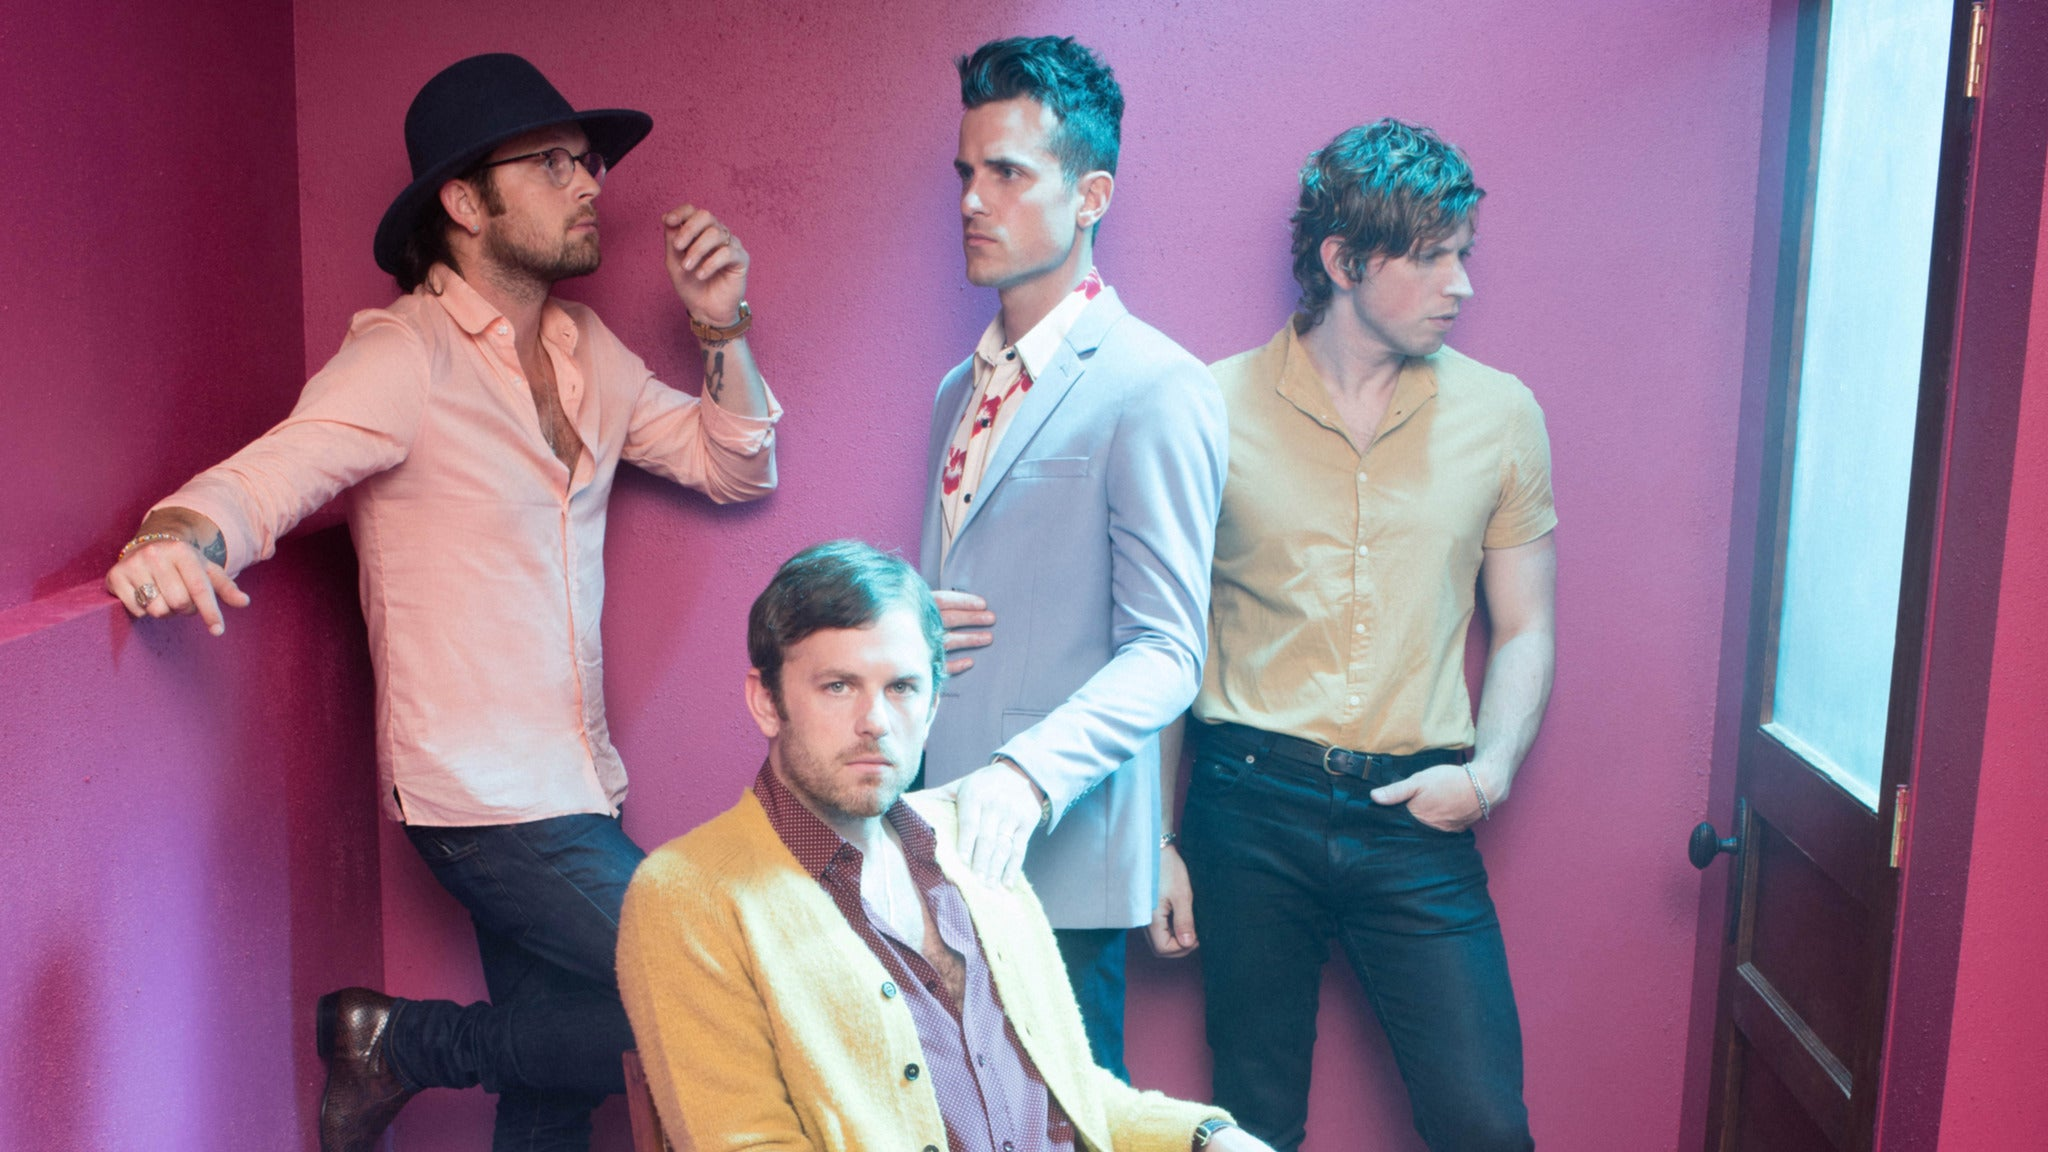 106.7 KROQ Presents Kings of Leon at The Forum